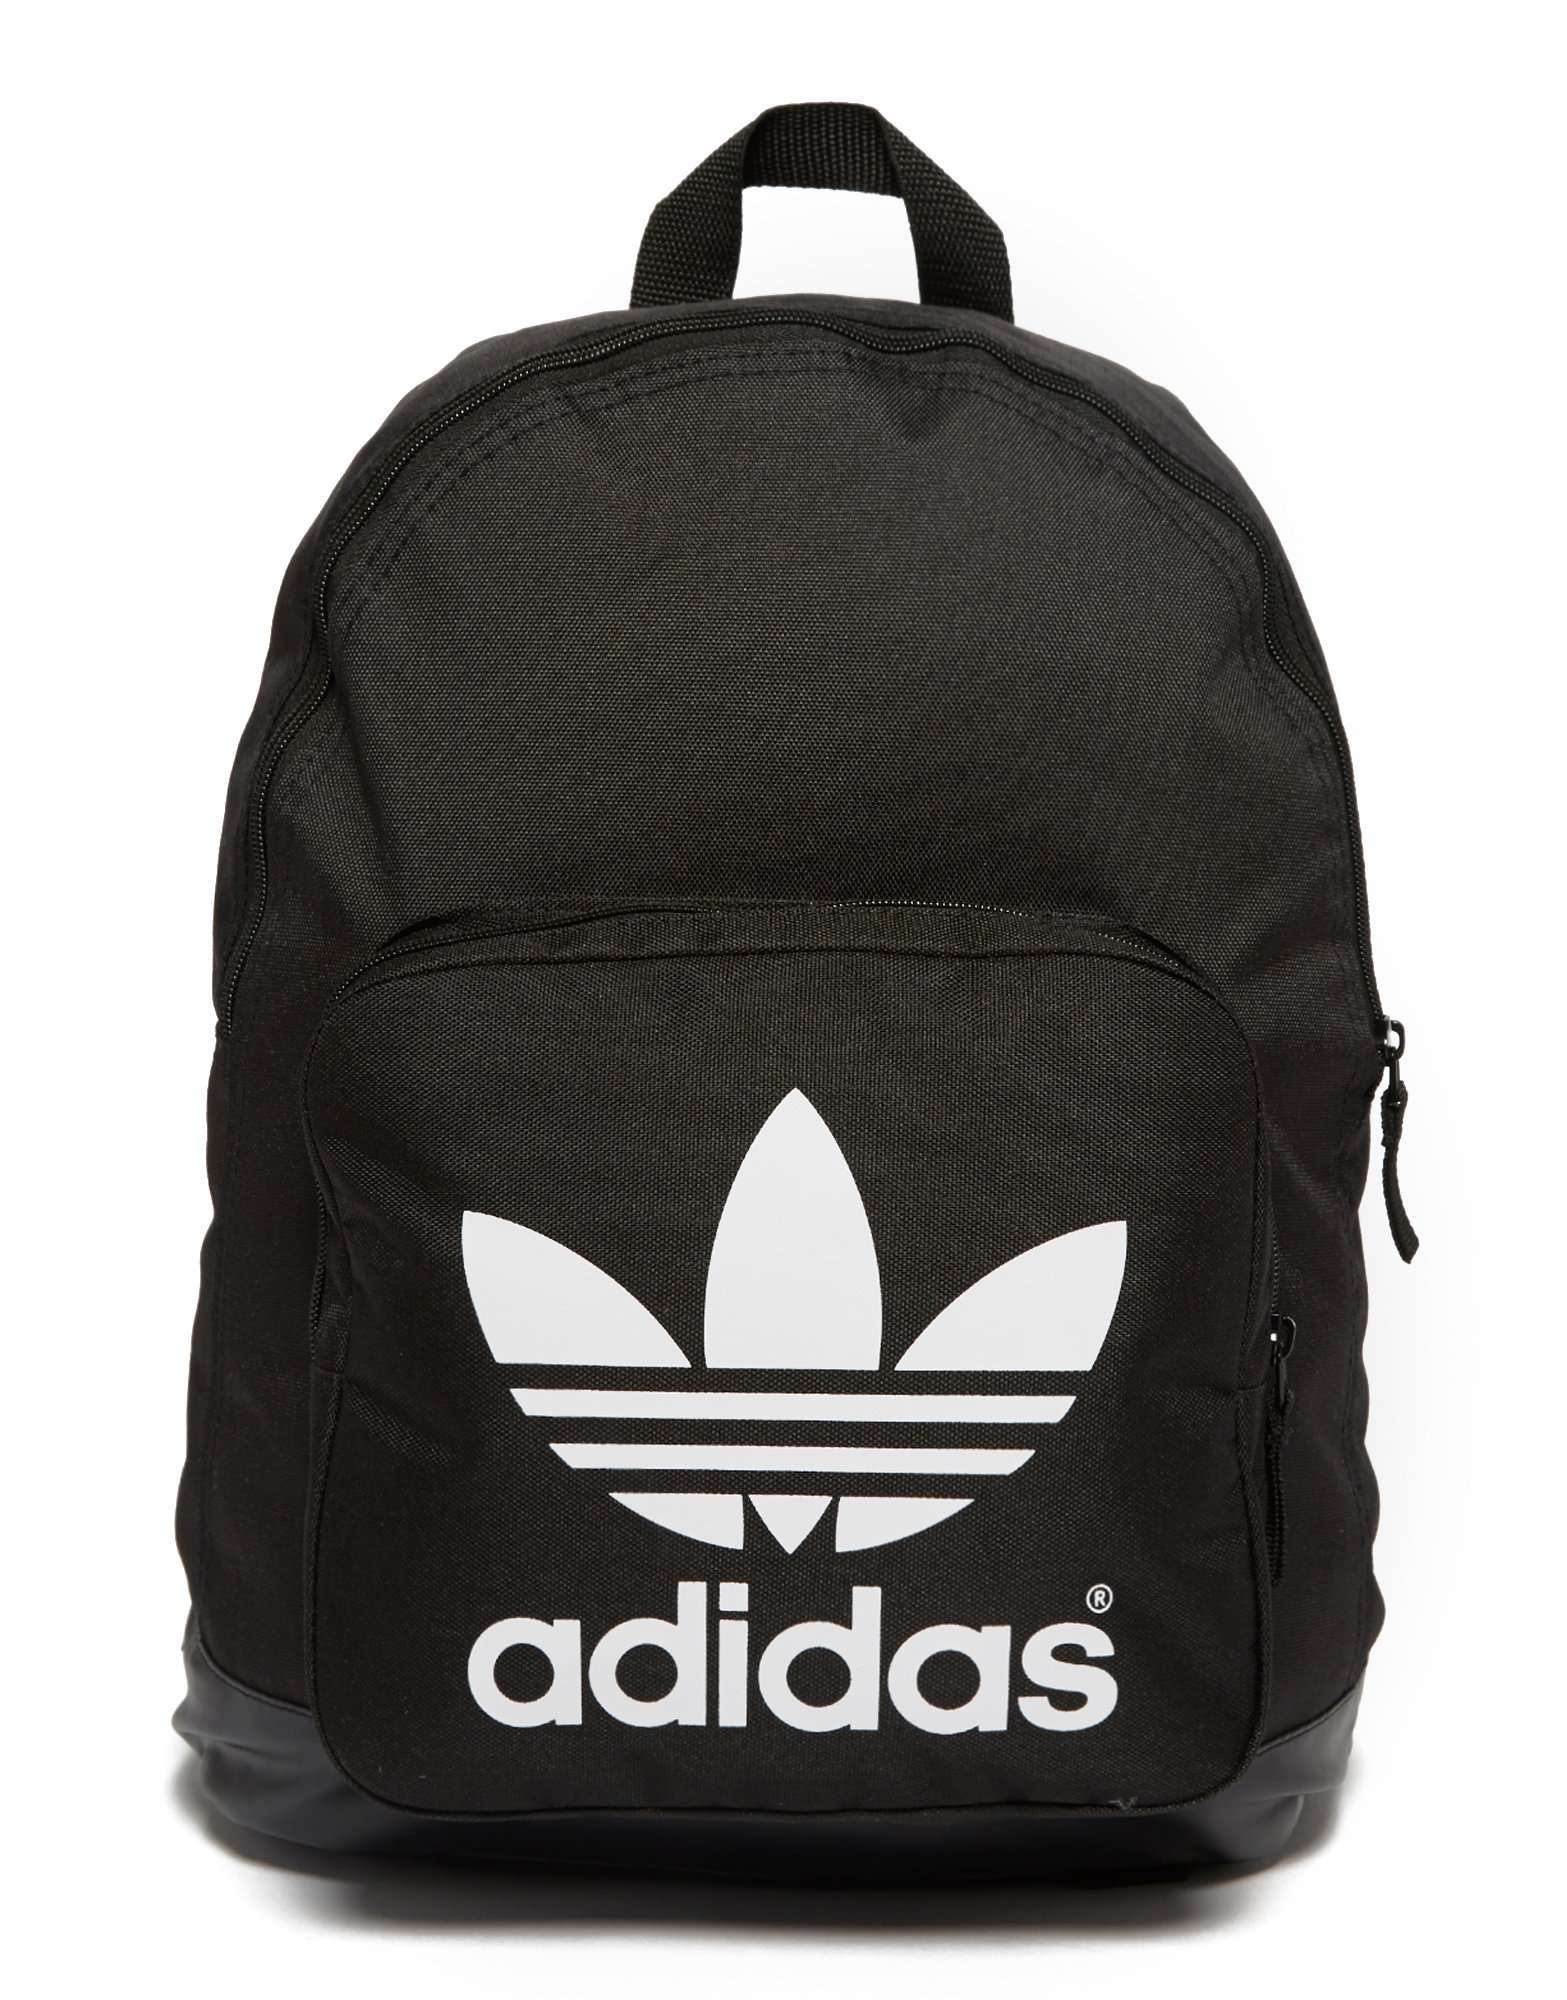 adidas bag backpack